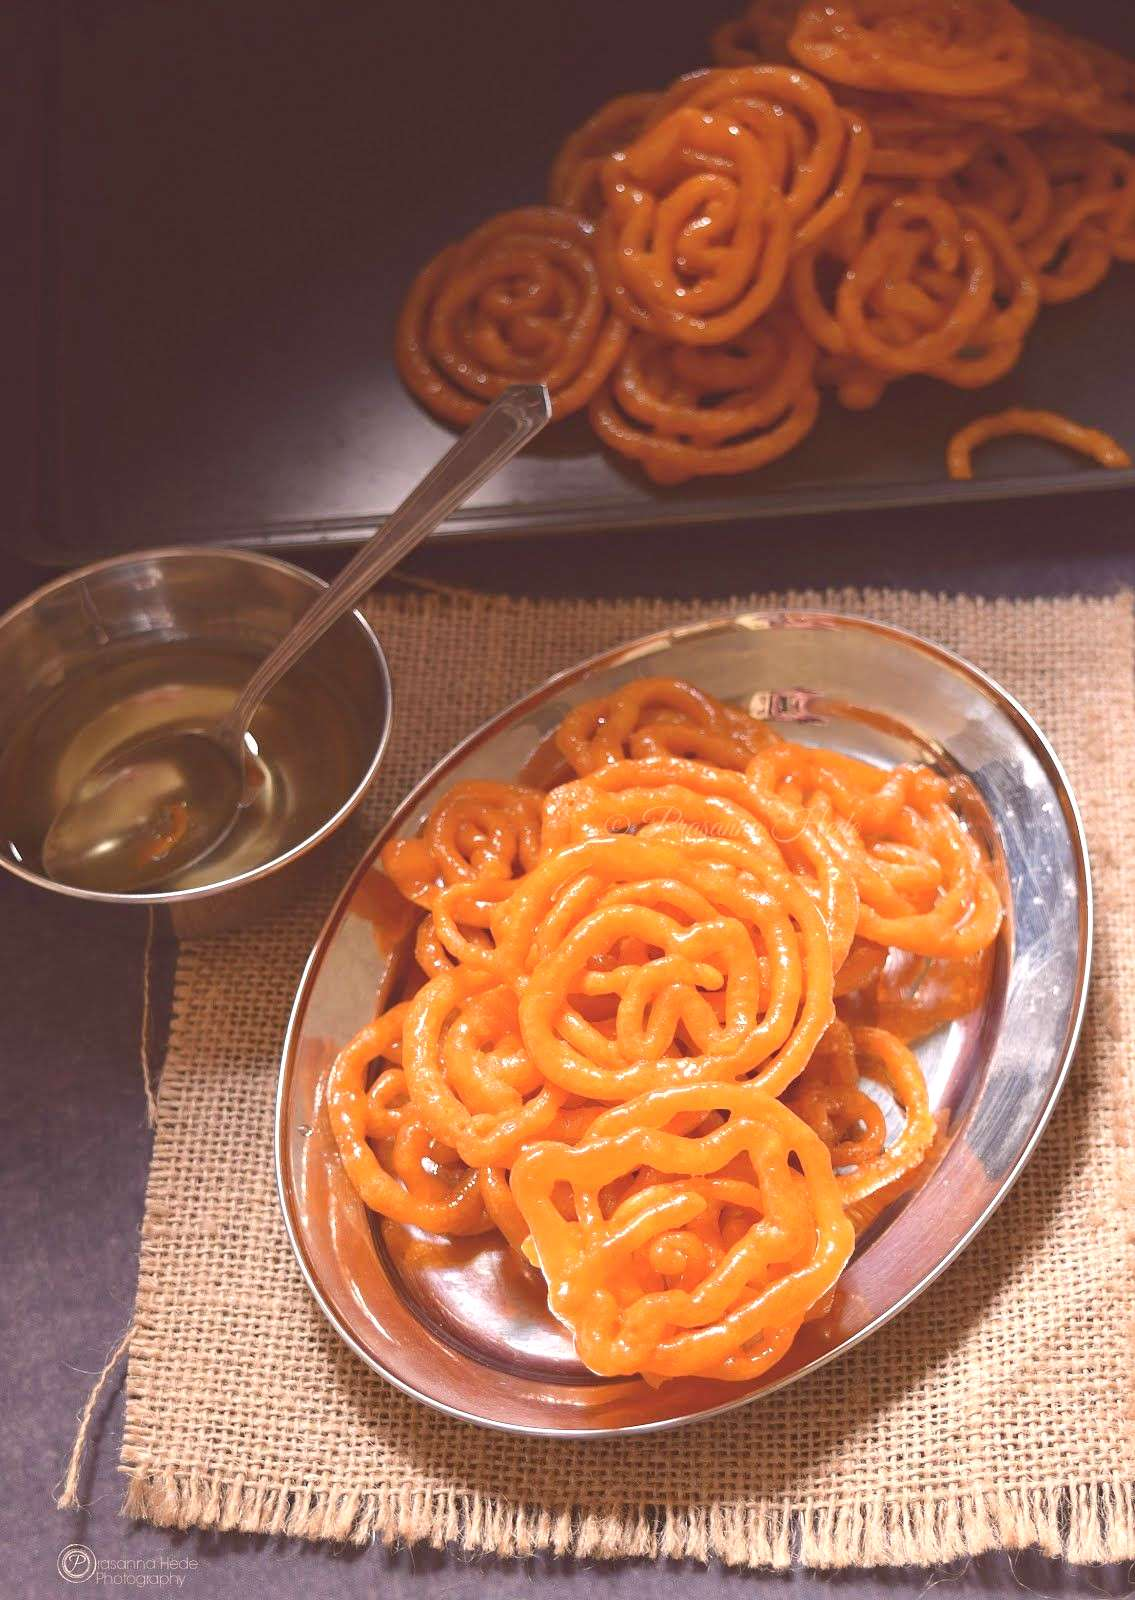 Instant Jalebi - Savory Bites Recipes - A Food Blog with Quick and Easy Recipes